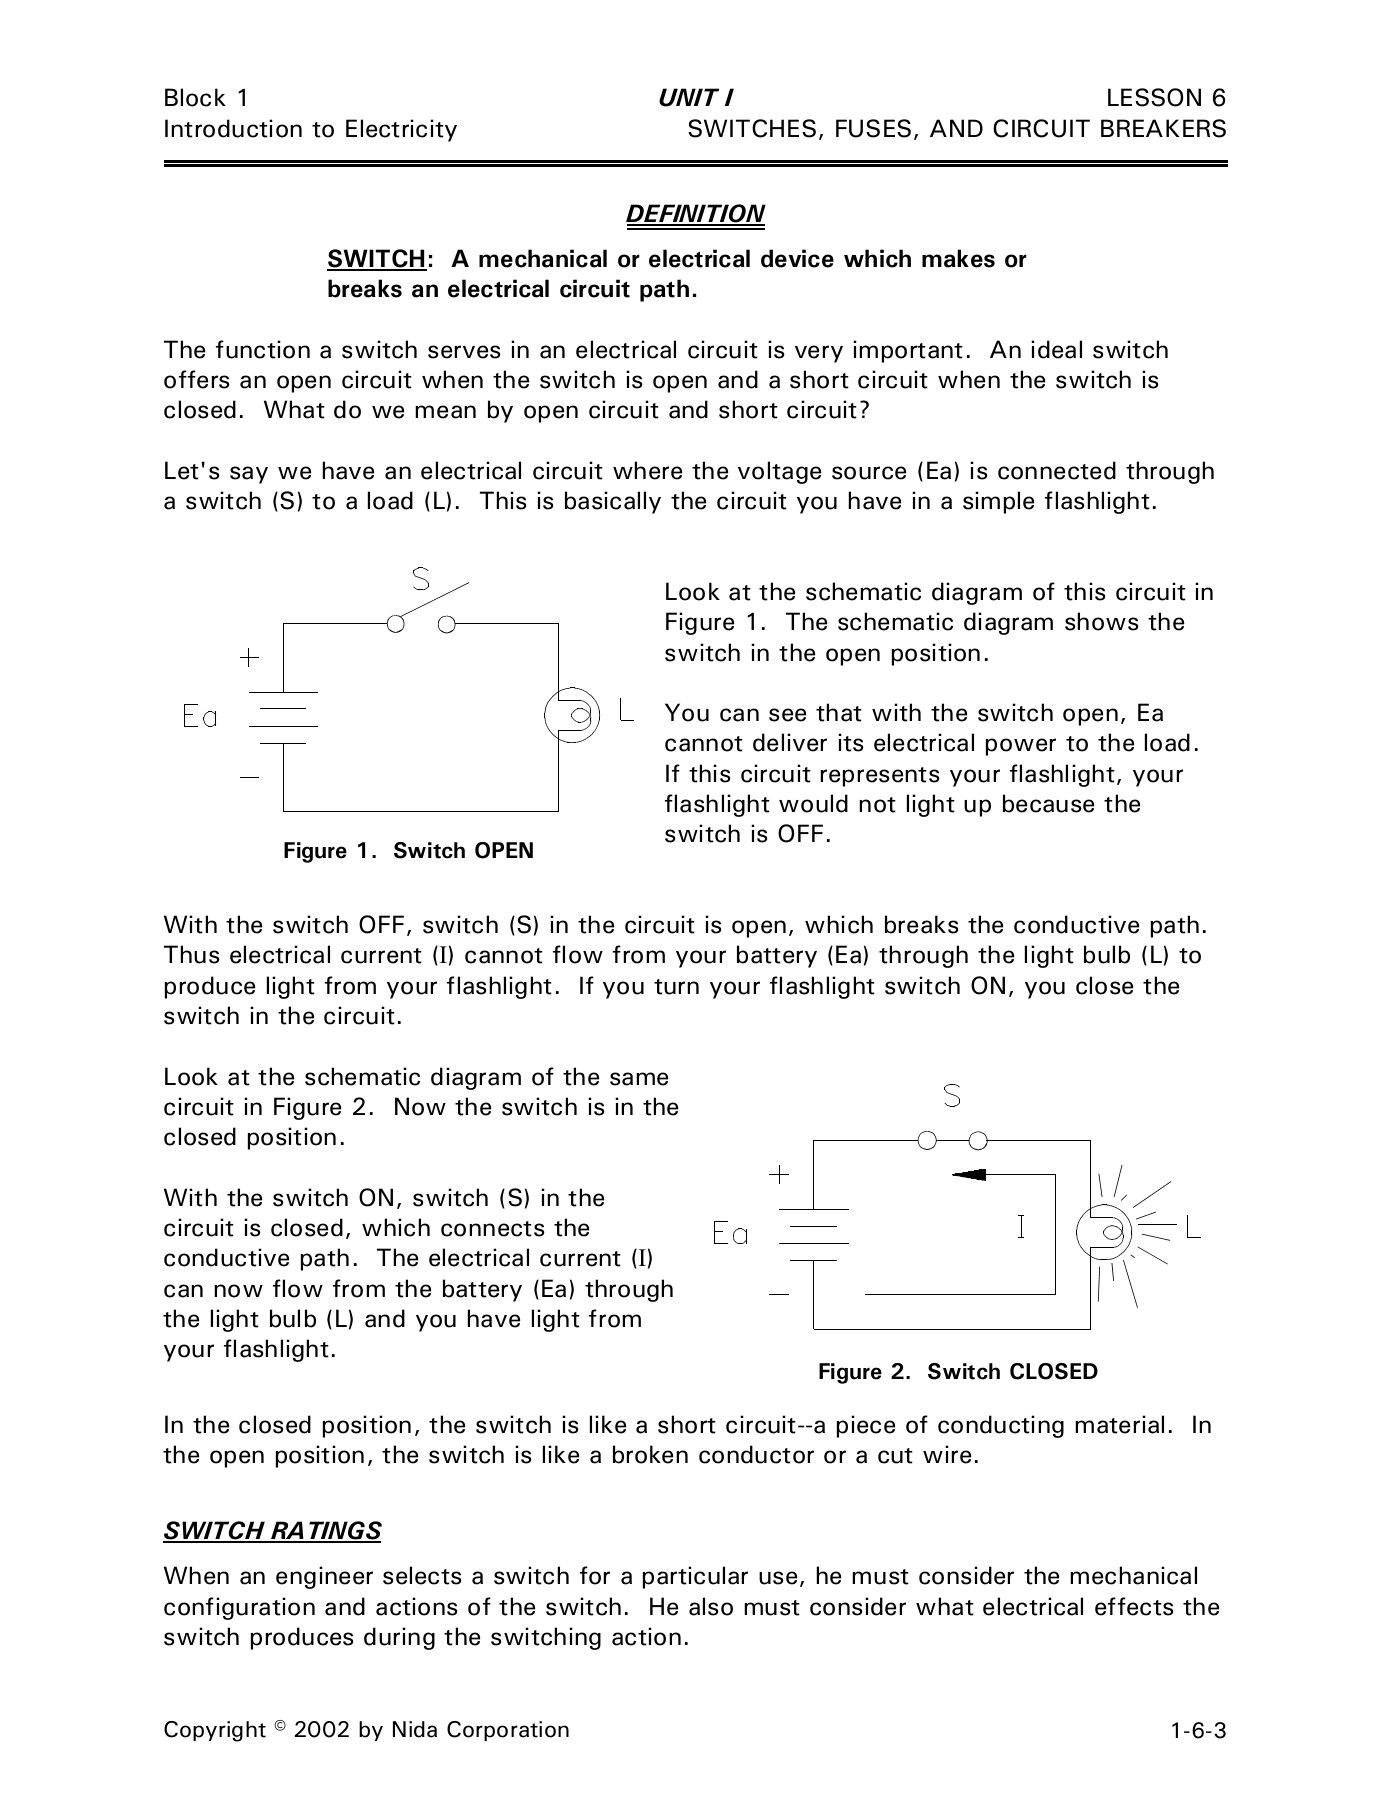 Is Schematic Diagram Definition